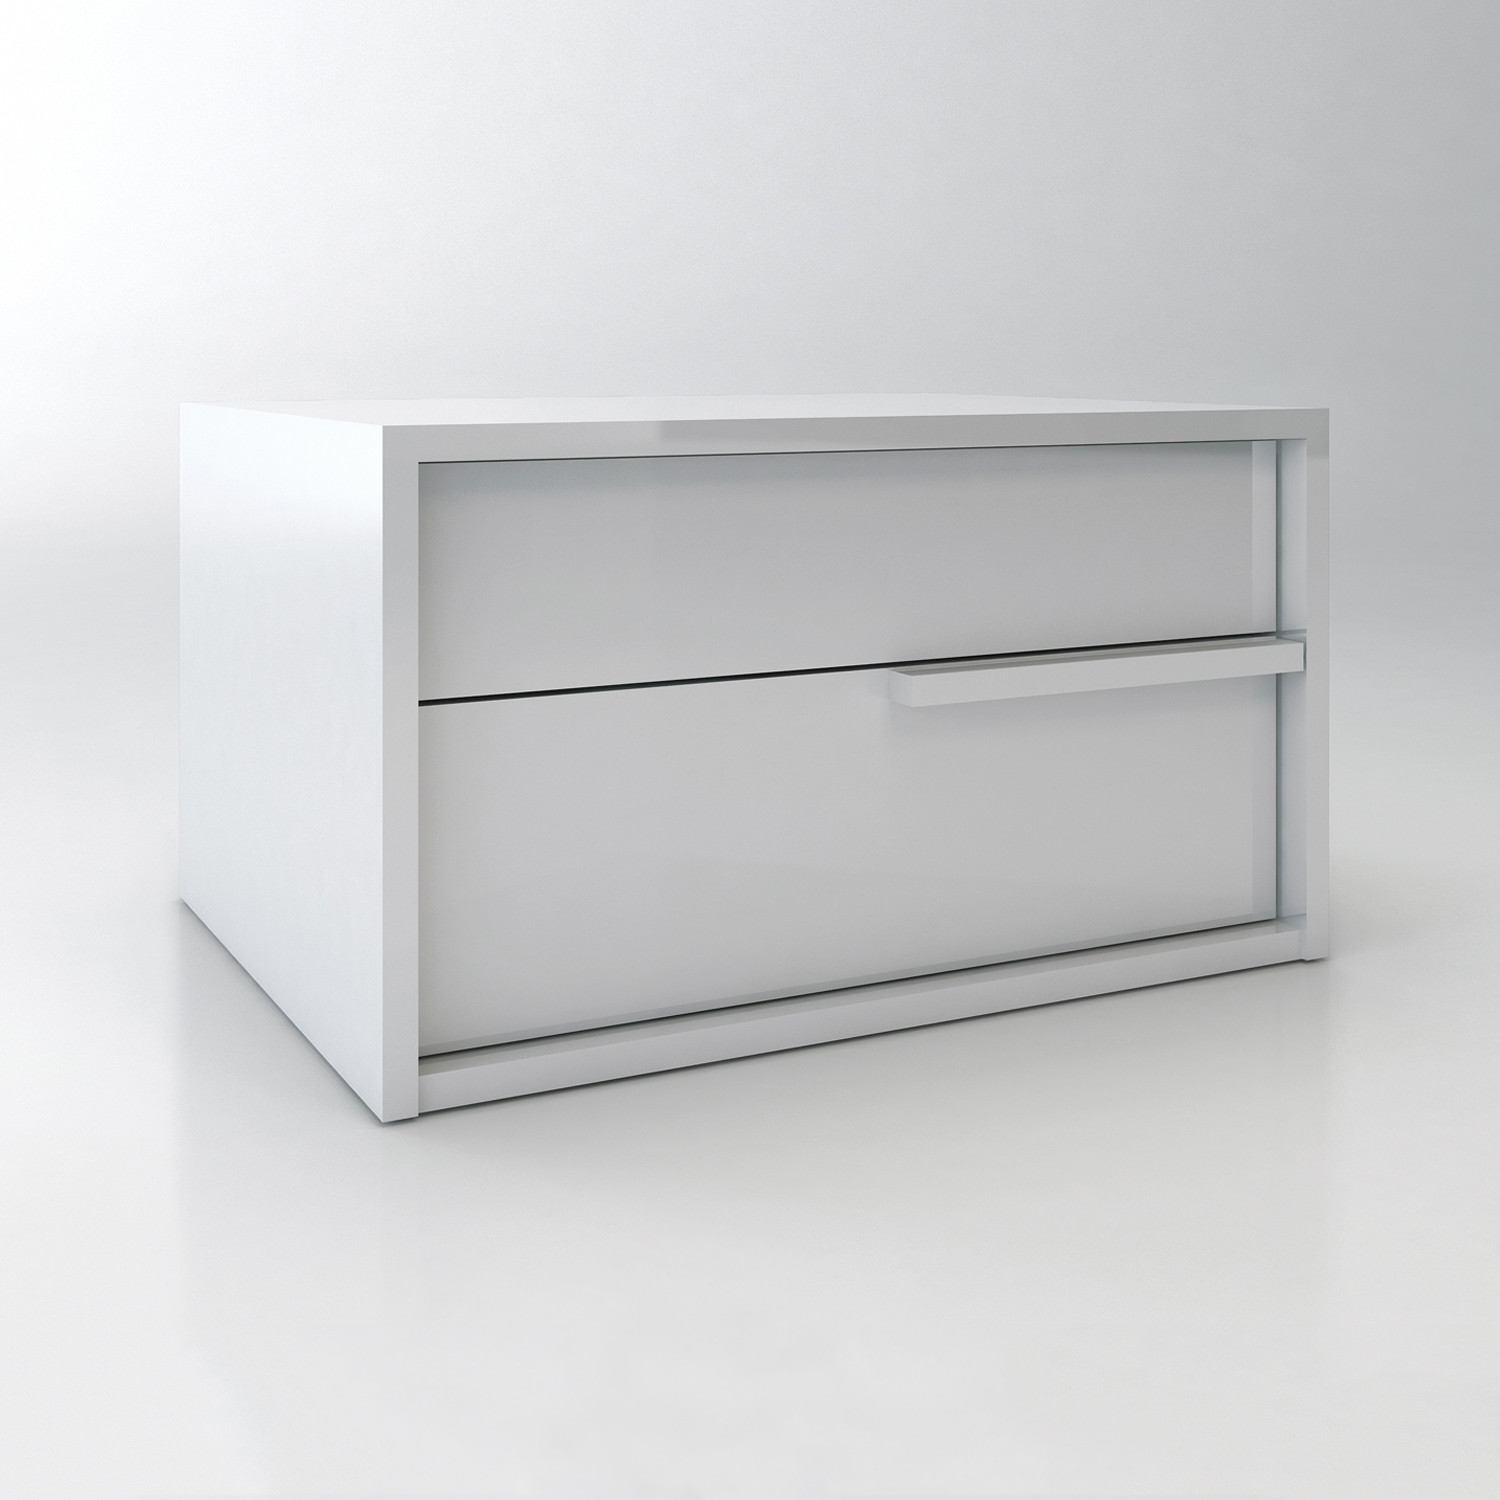 stylish white file with finish office spacious filing contemporary tiers futuristic three durable galant design and clear particleboard remarkable foil cabinet ikea panel gray lacquer compact melamine drawer in keep acrylic storage bottom easy endearing